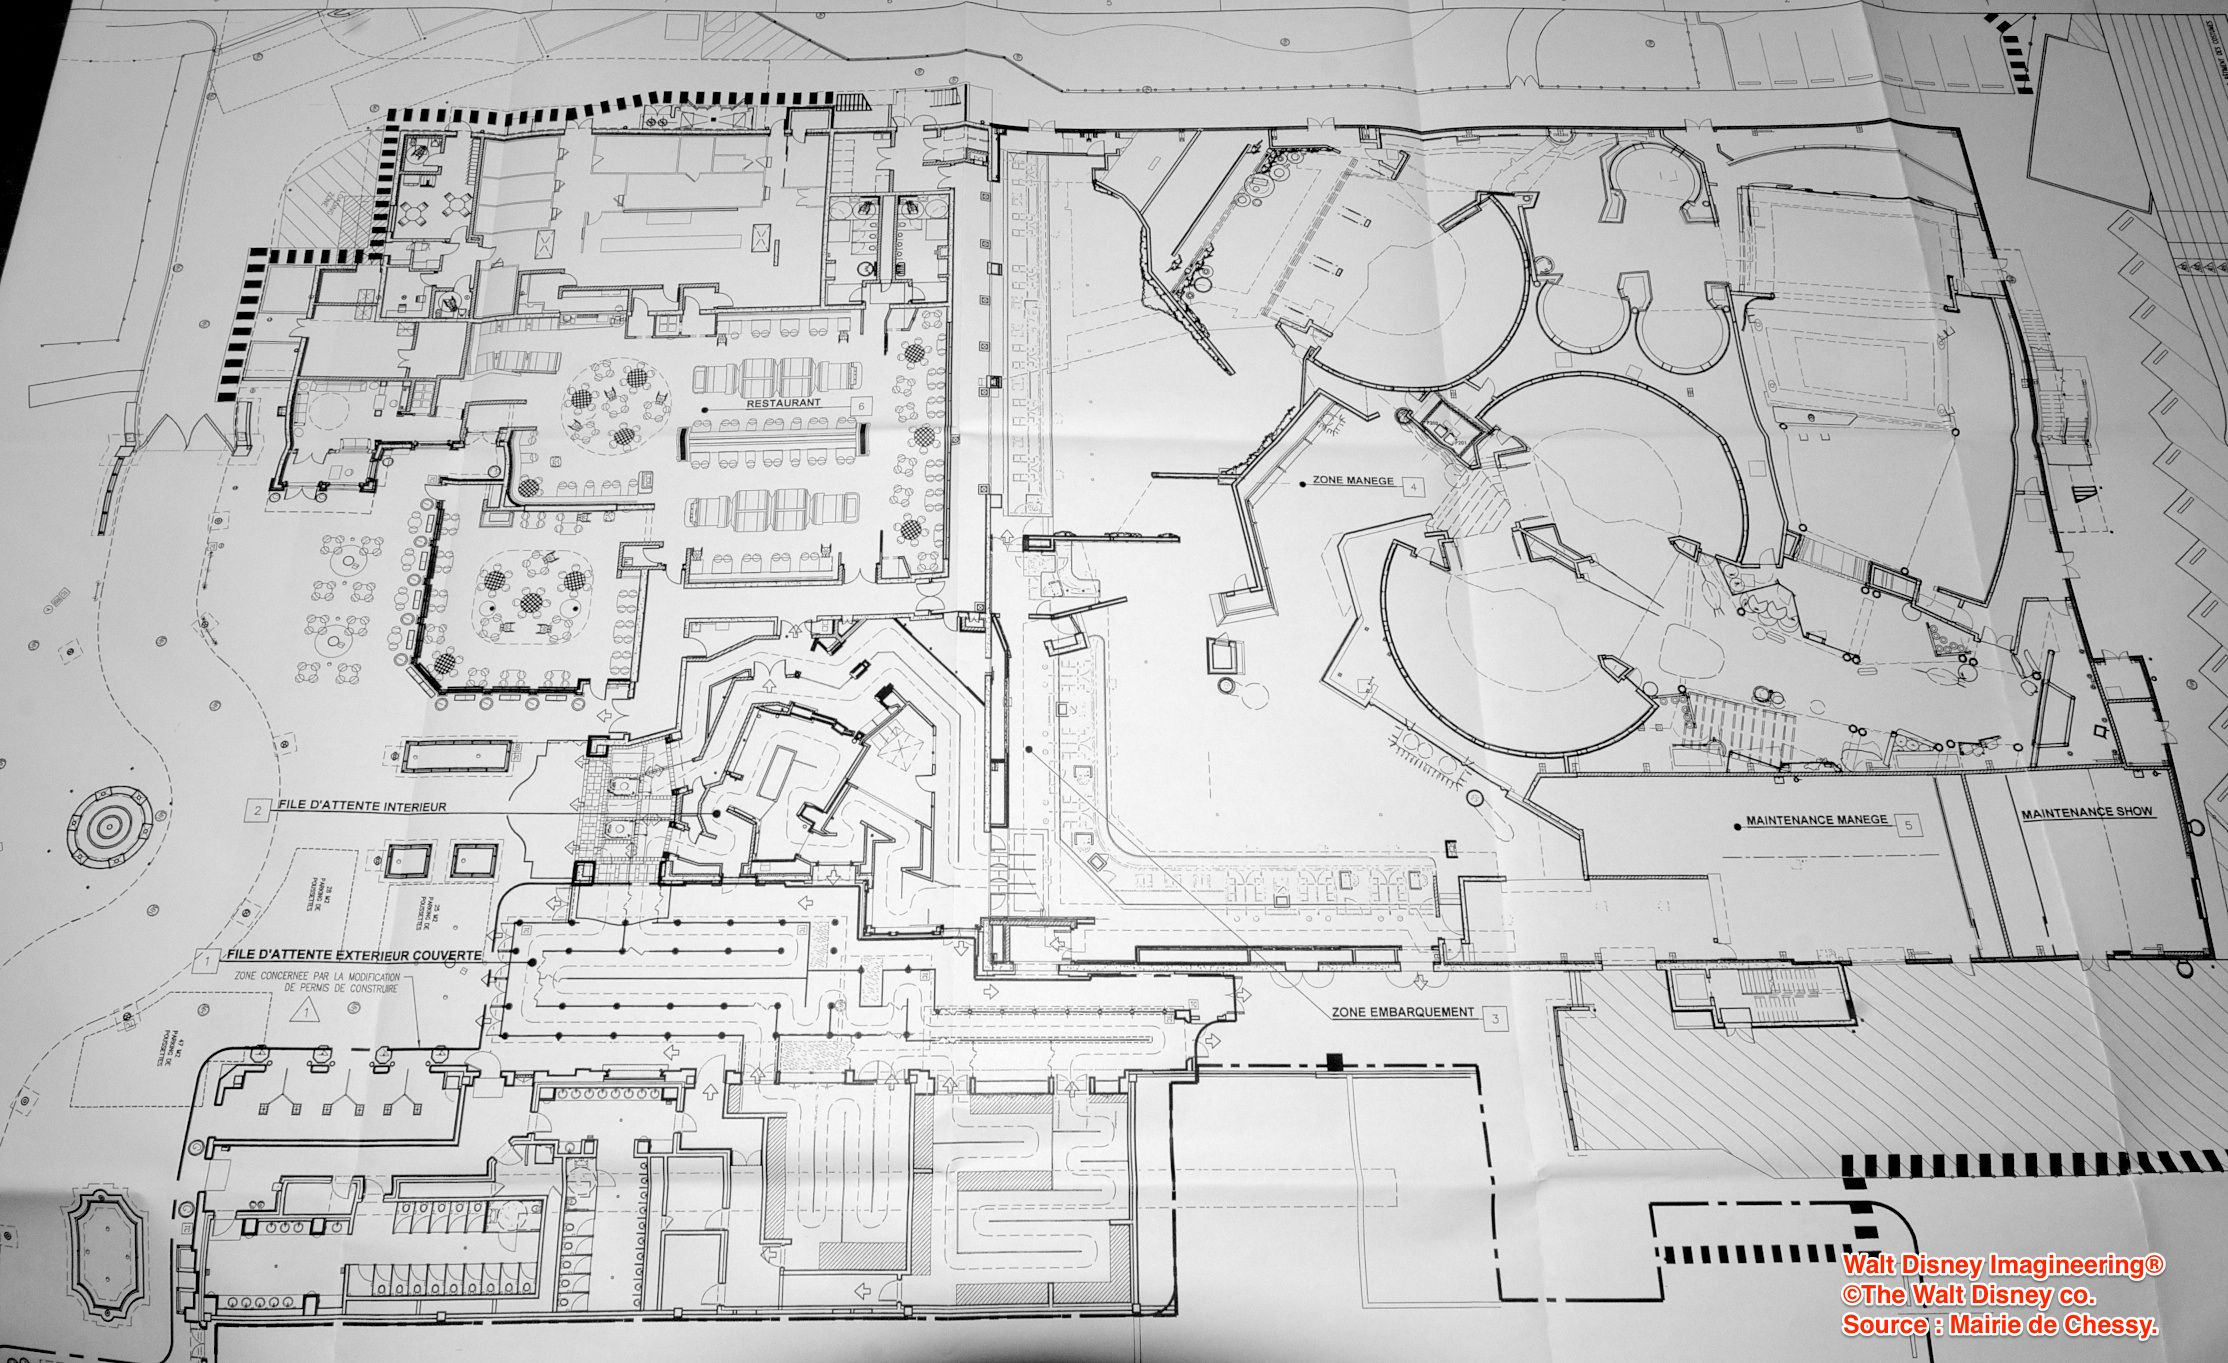 Ratatouille attraction show building blueprint disneyland resort ratatouille attraction show building blueprint malvernweather Image collections